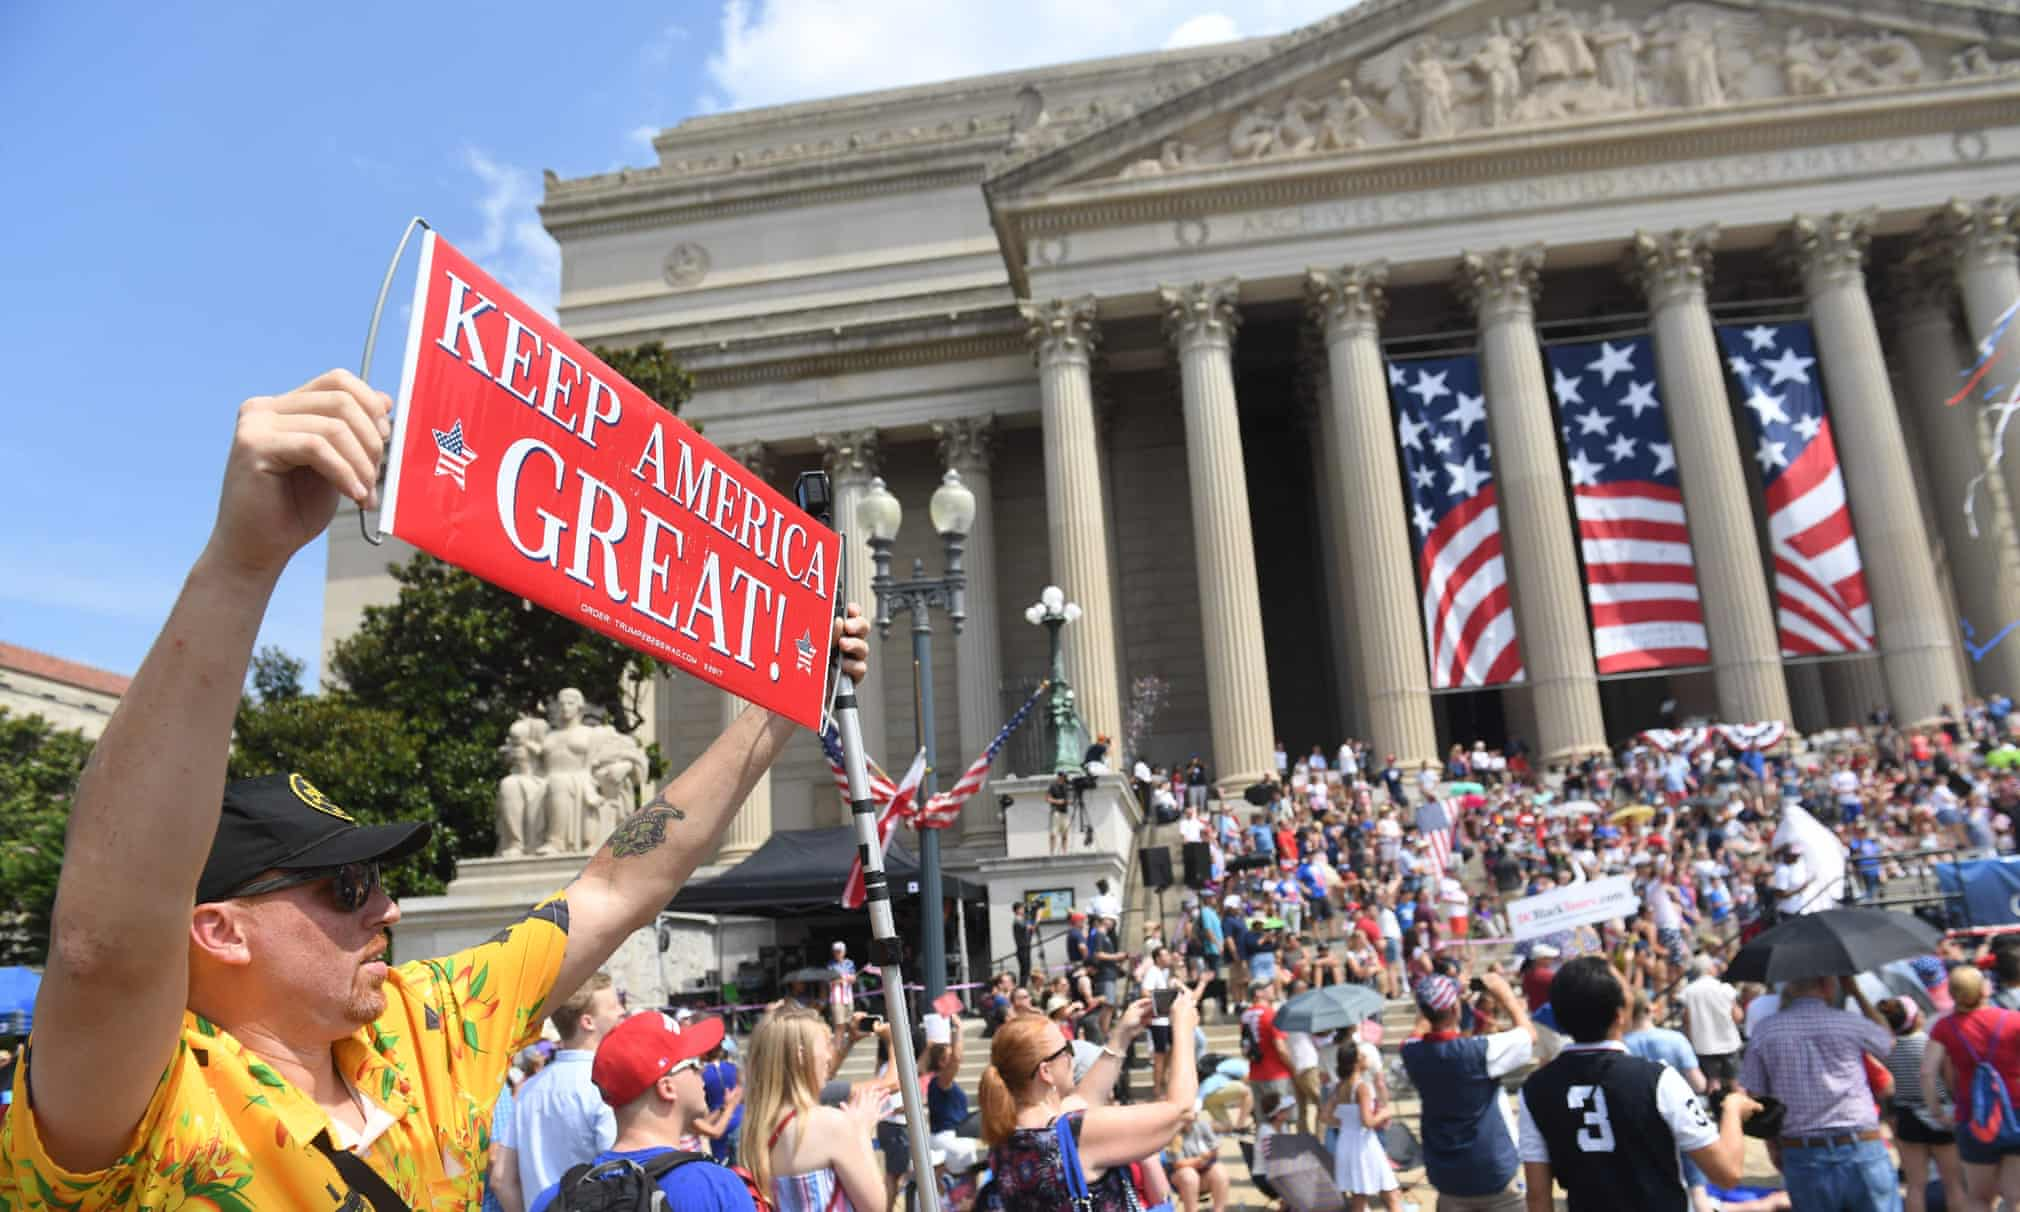 People march in the Independence Day parade in Washington DC on 4 July 2019